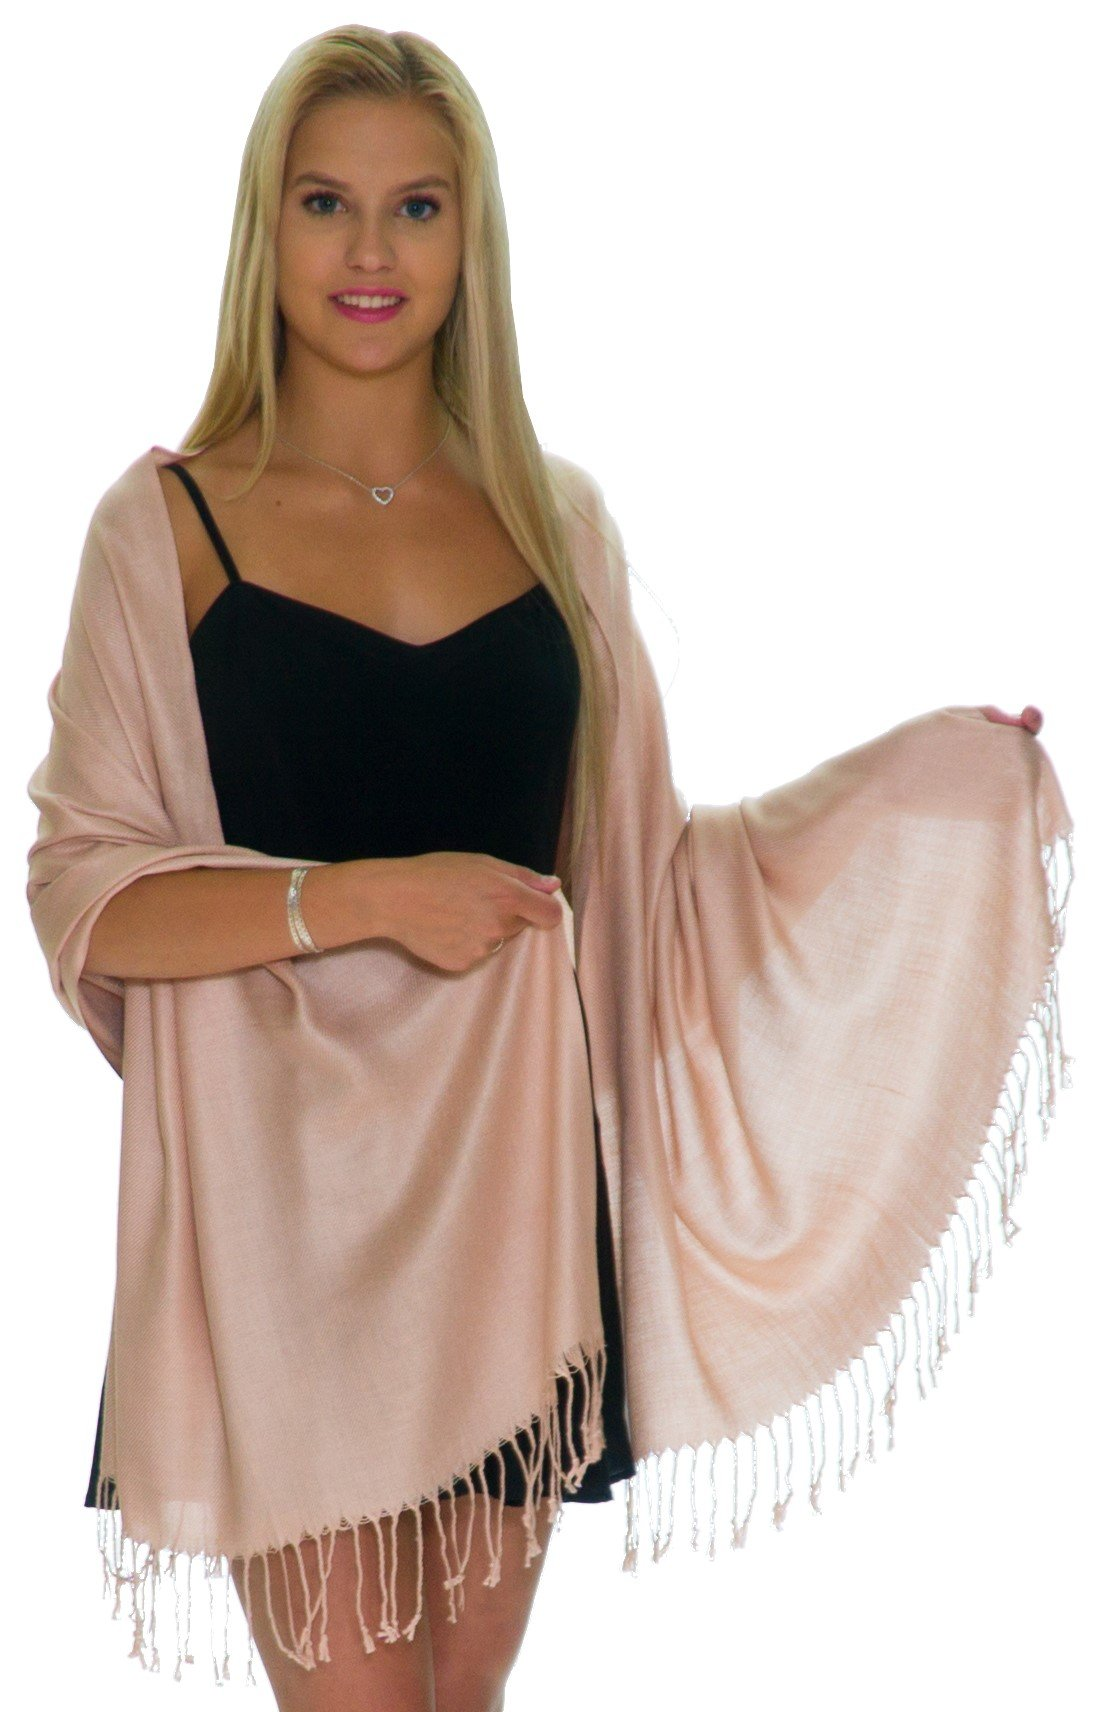 Pashmina Shawls and Wraps - Large Scarfs for Women - Party Bridal Long Fashion Shawl Wrap with Fringe Petal Rose - Pale Rose Gold by ShineGlitz